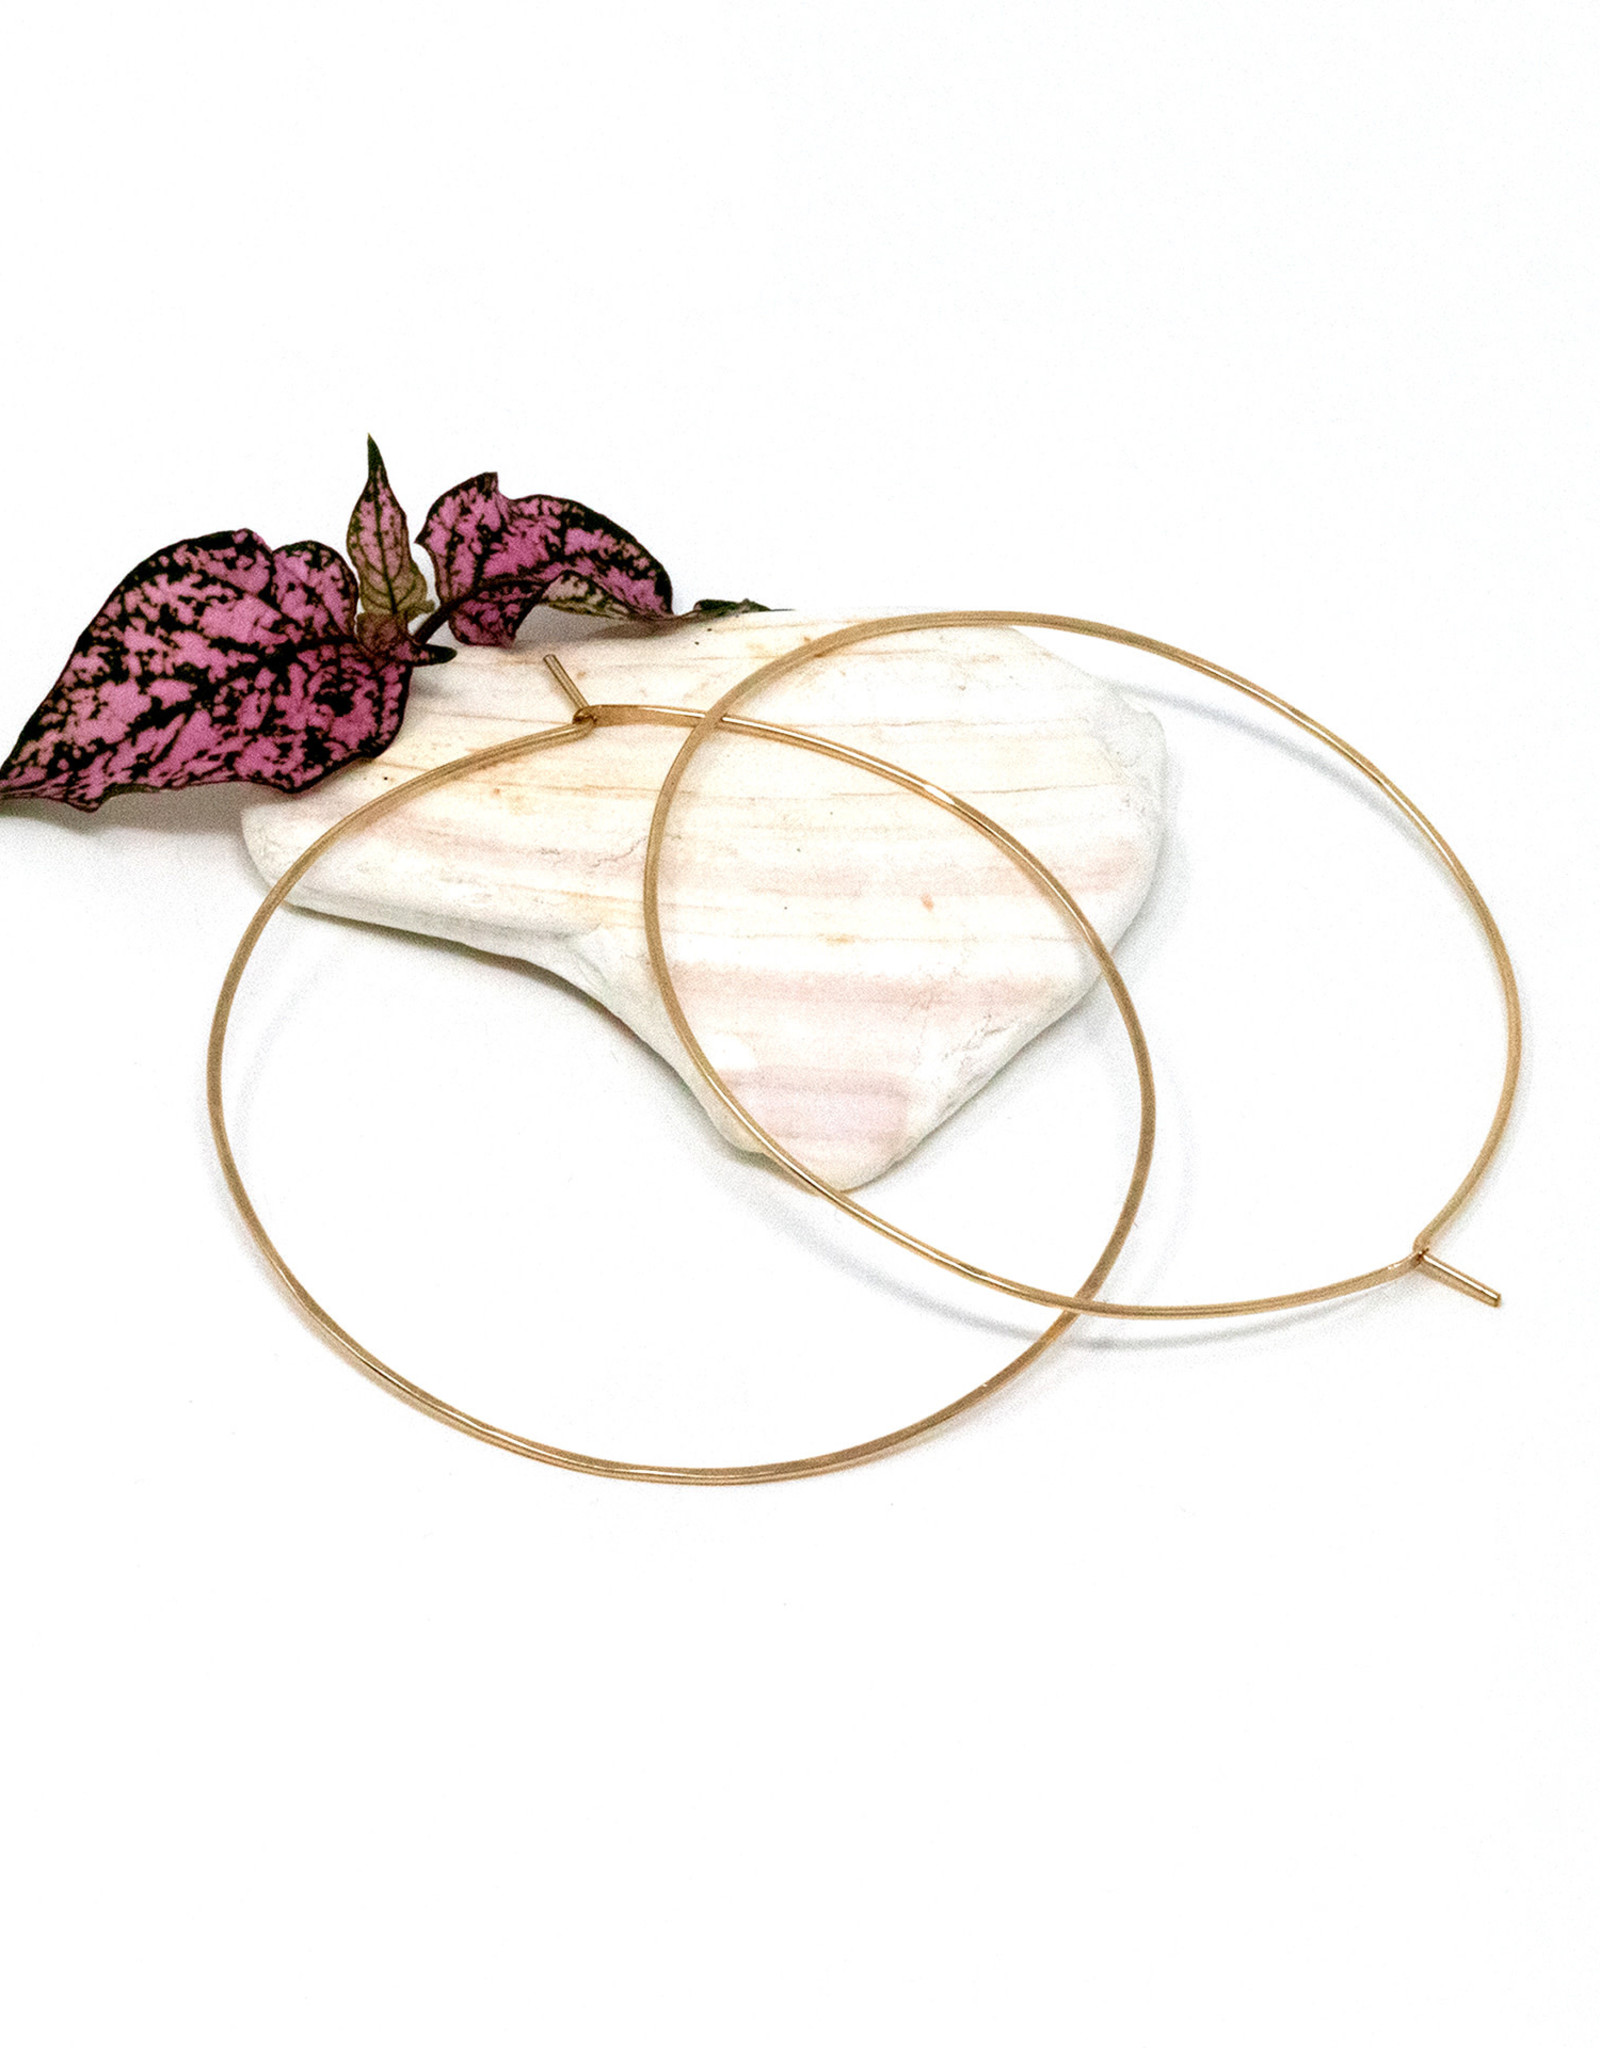 August Hess August Hess/14K GoldFill Infinity Hoops/Large